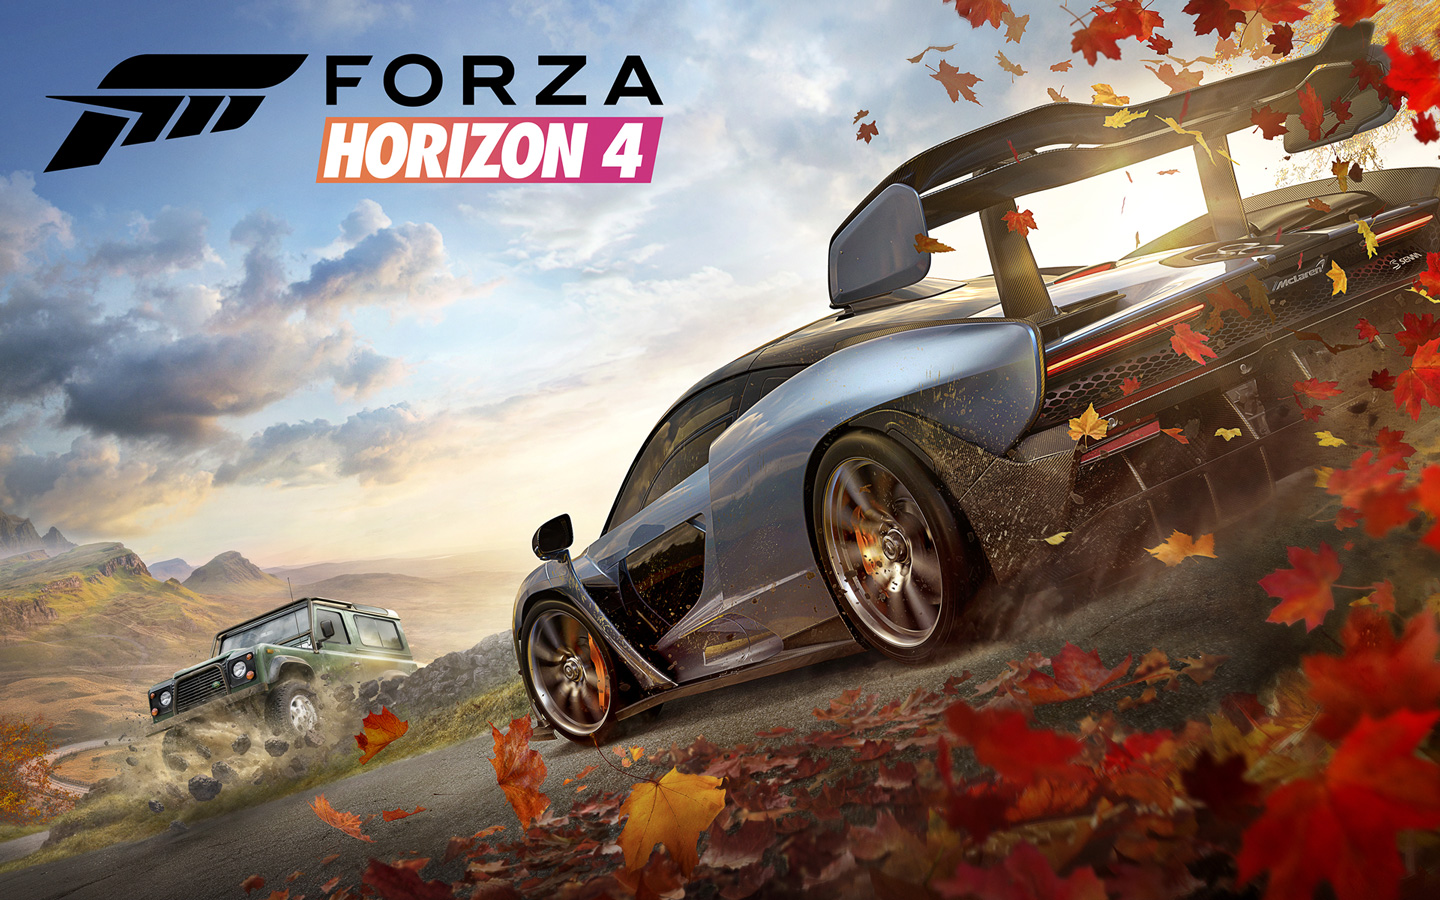 Free Forza Horizon 4 Wallpaper in 1440x900